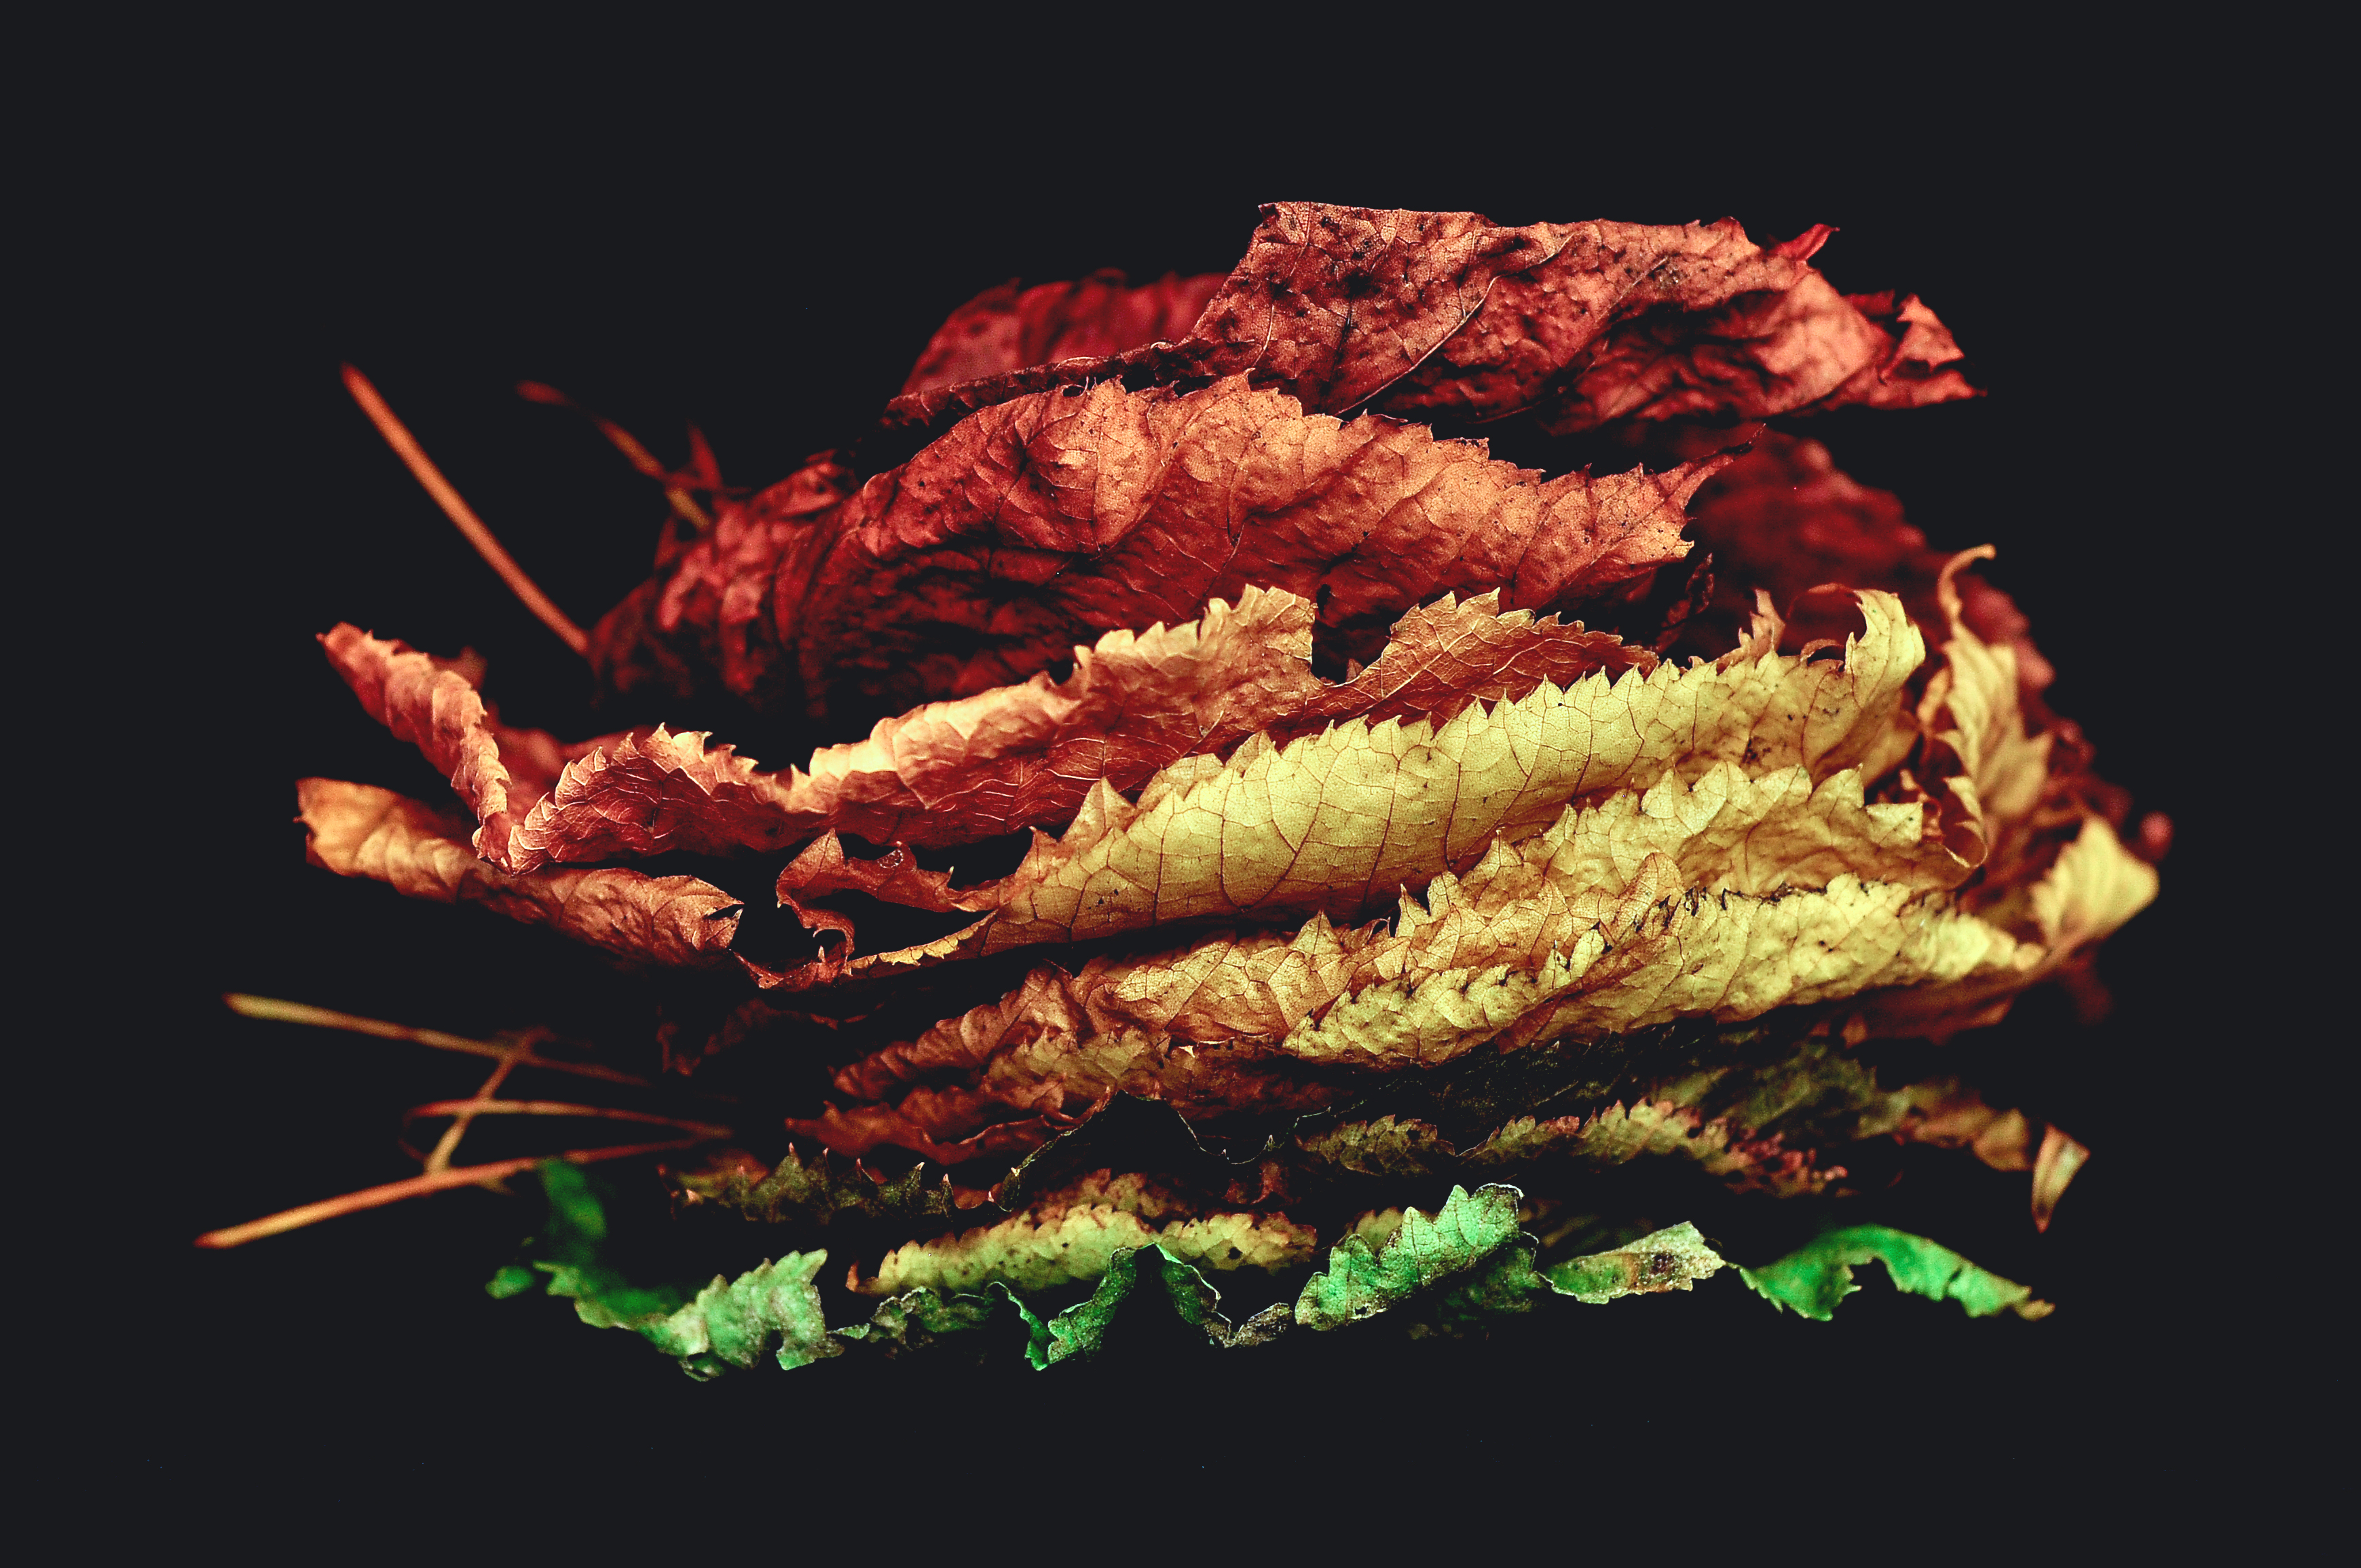 Fall Of The Leafe Wallpaper Life Of Leaves Photo By Davide Ragusa Davideragusa On